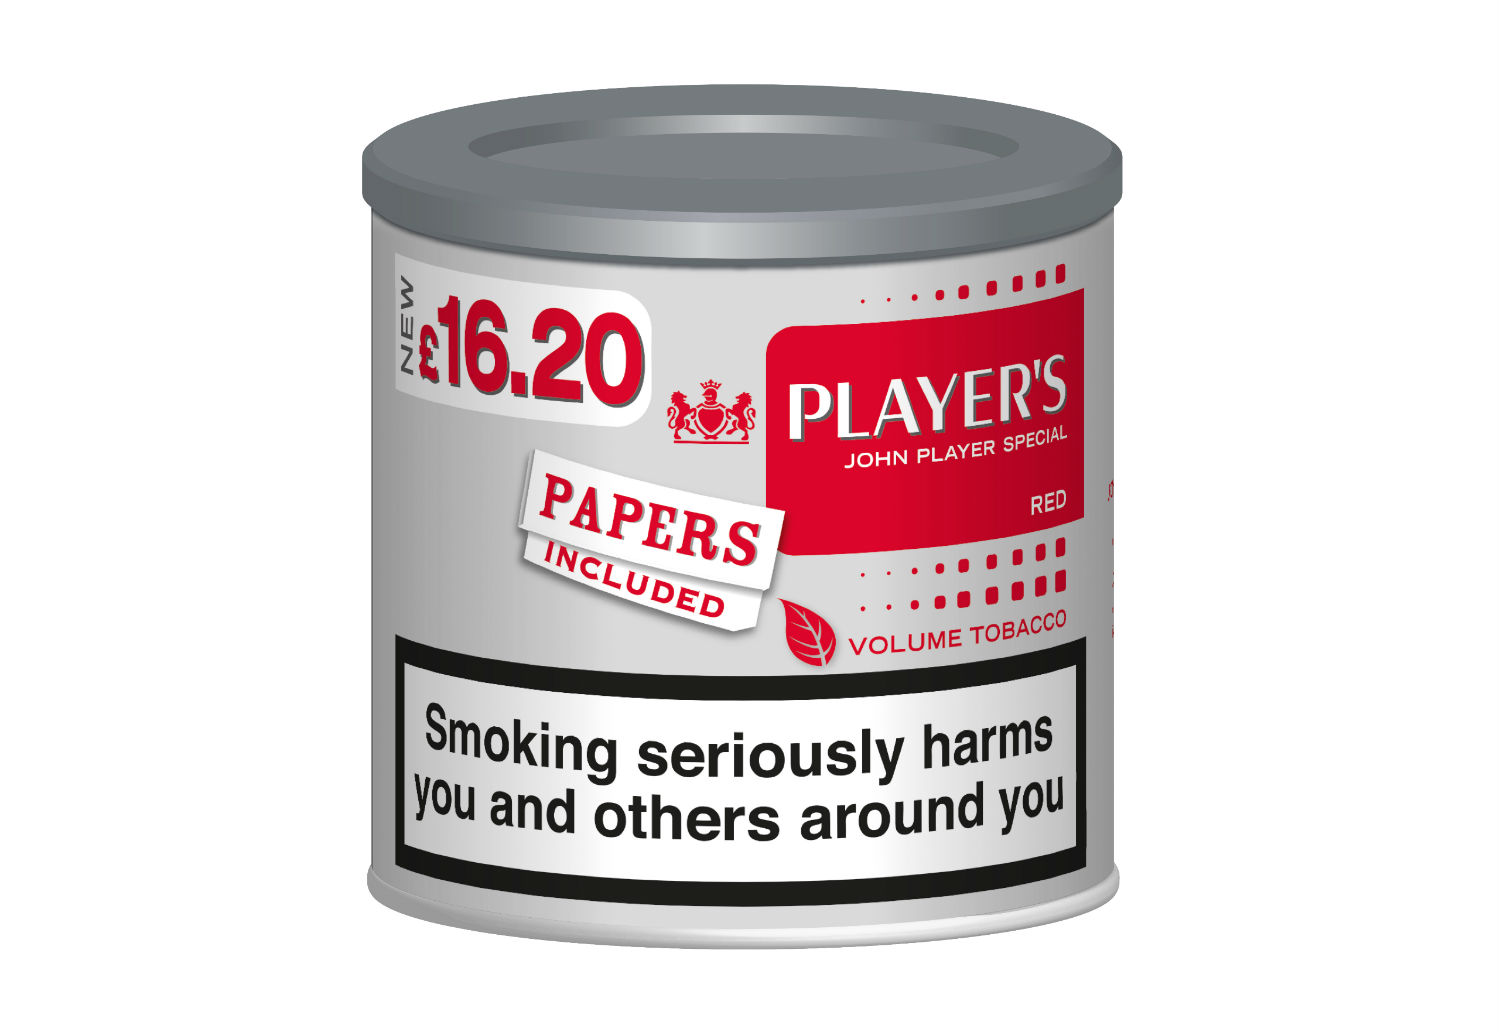 Imperial Tobacco announces Player's Red Volume Tobacco